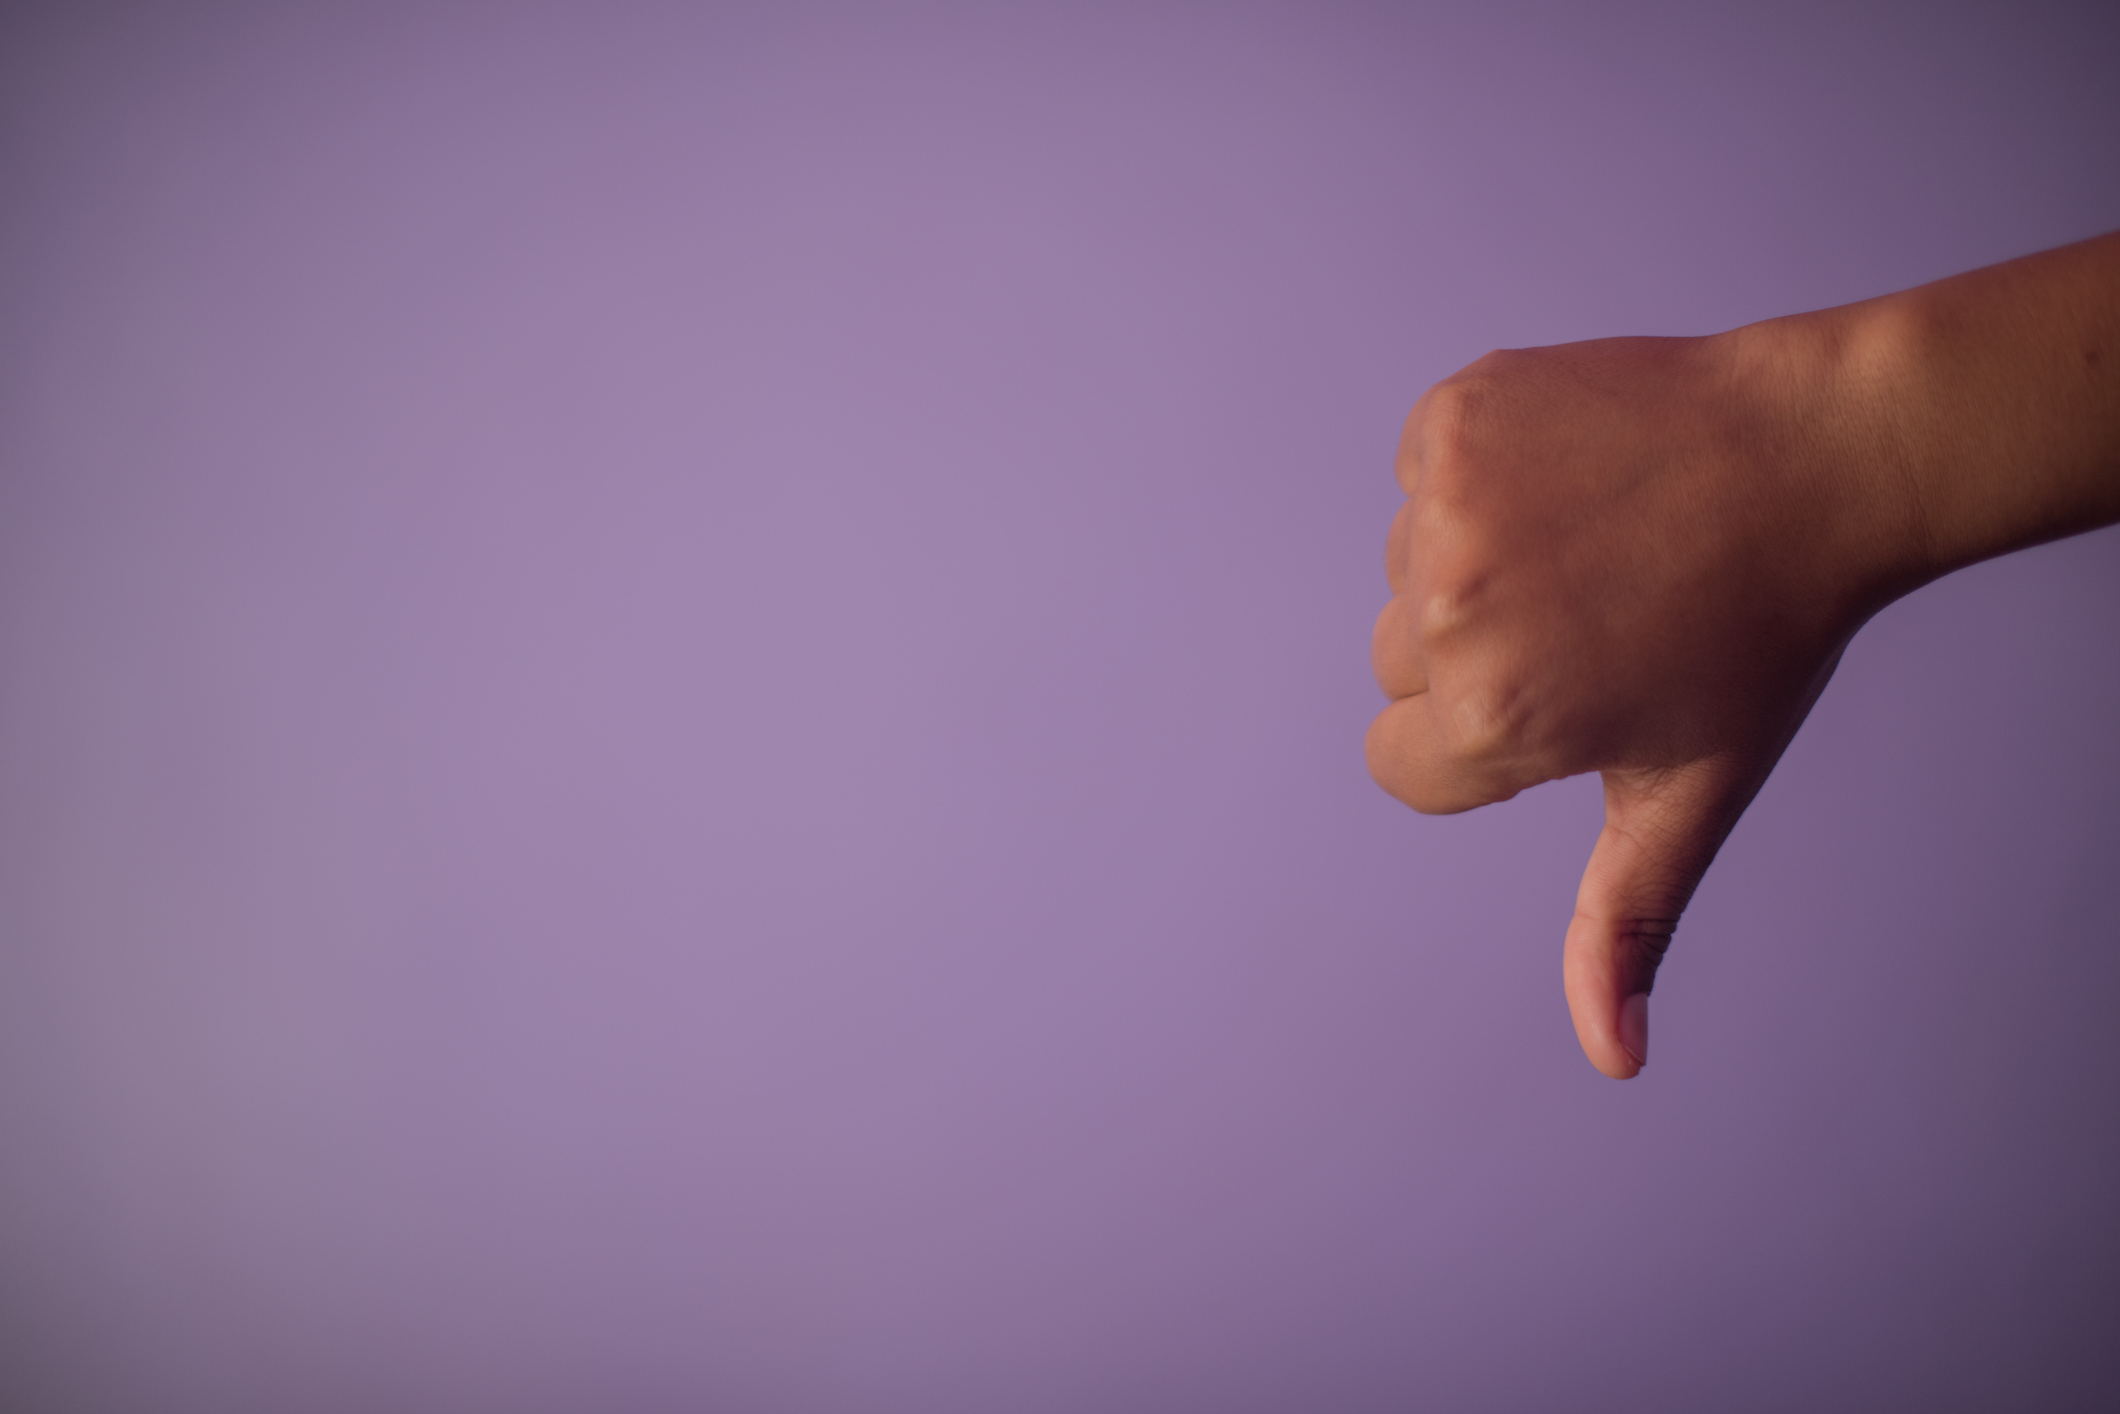 Close-Up Of Hand Giving Thumbs Down.